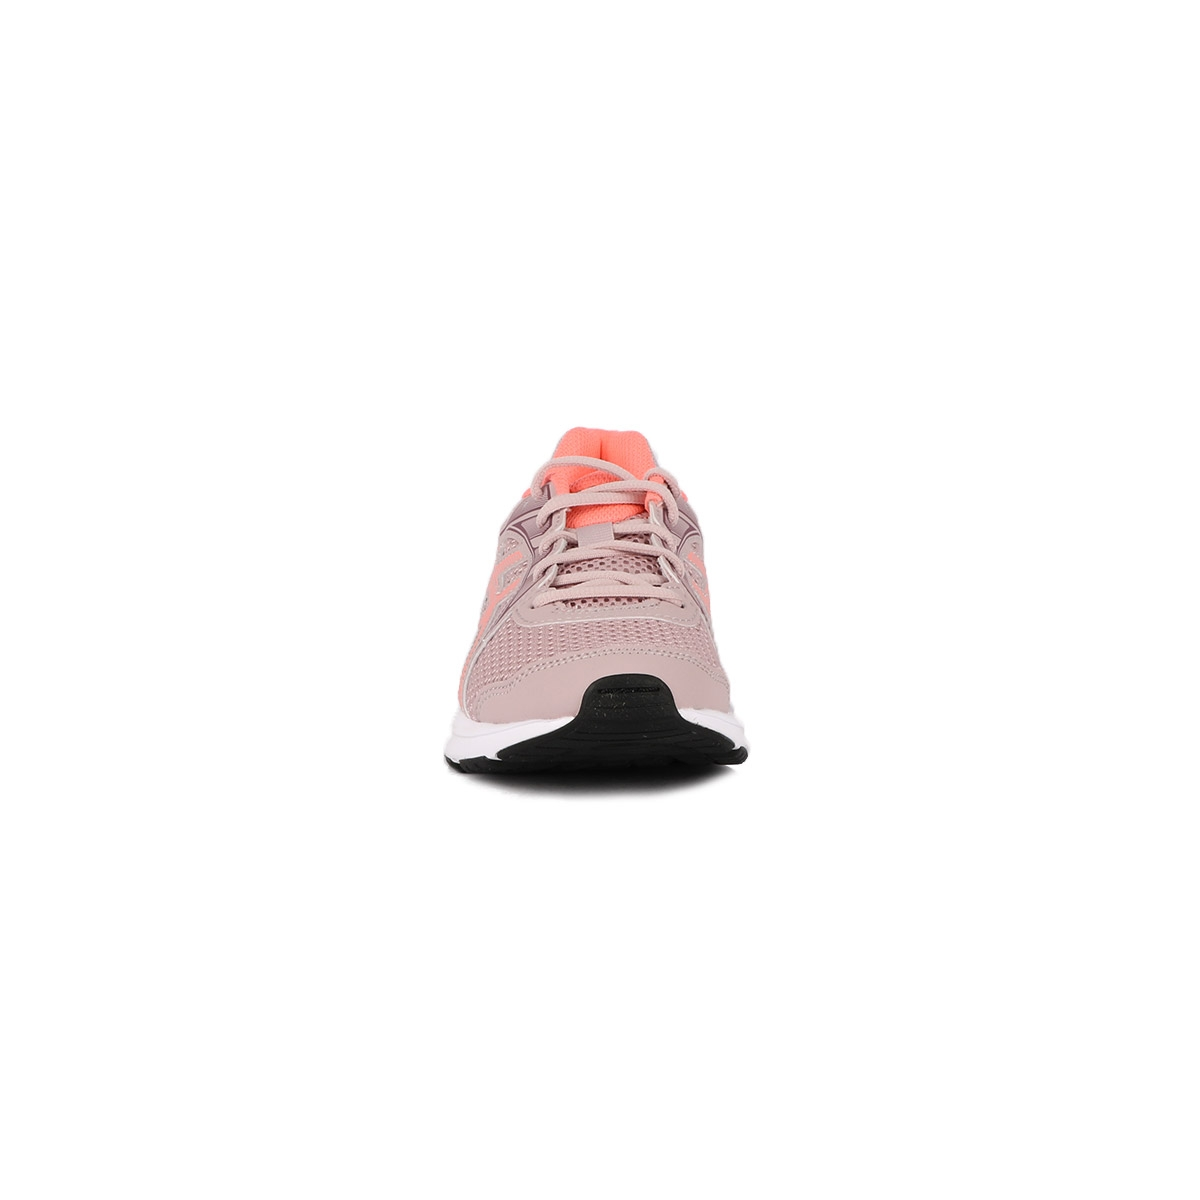 Asics Jolt 2 GS Watershed Rose sun Coral Rosa Niño